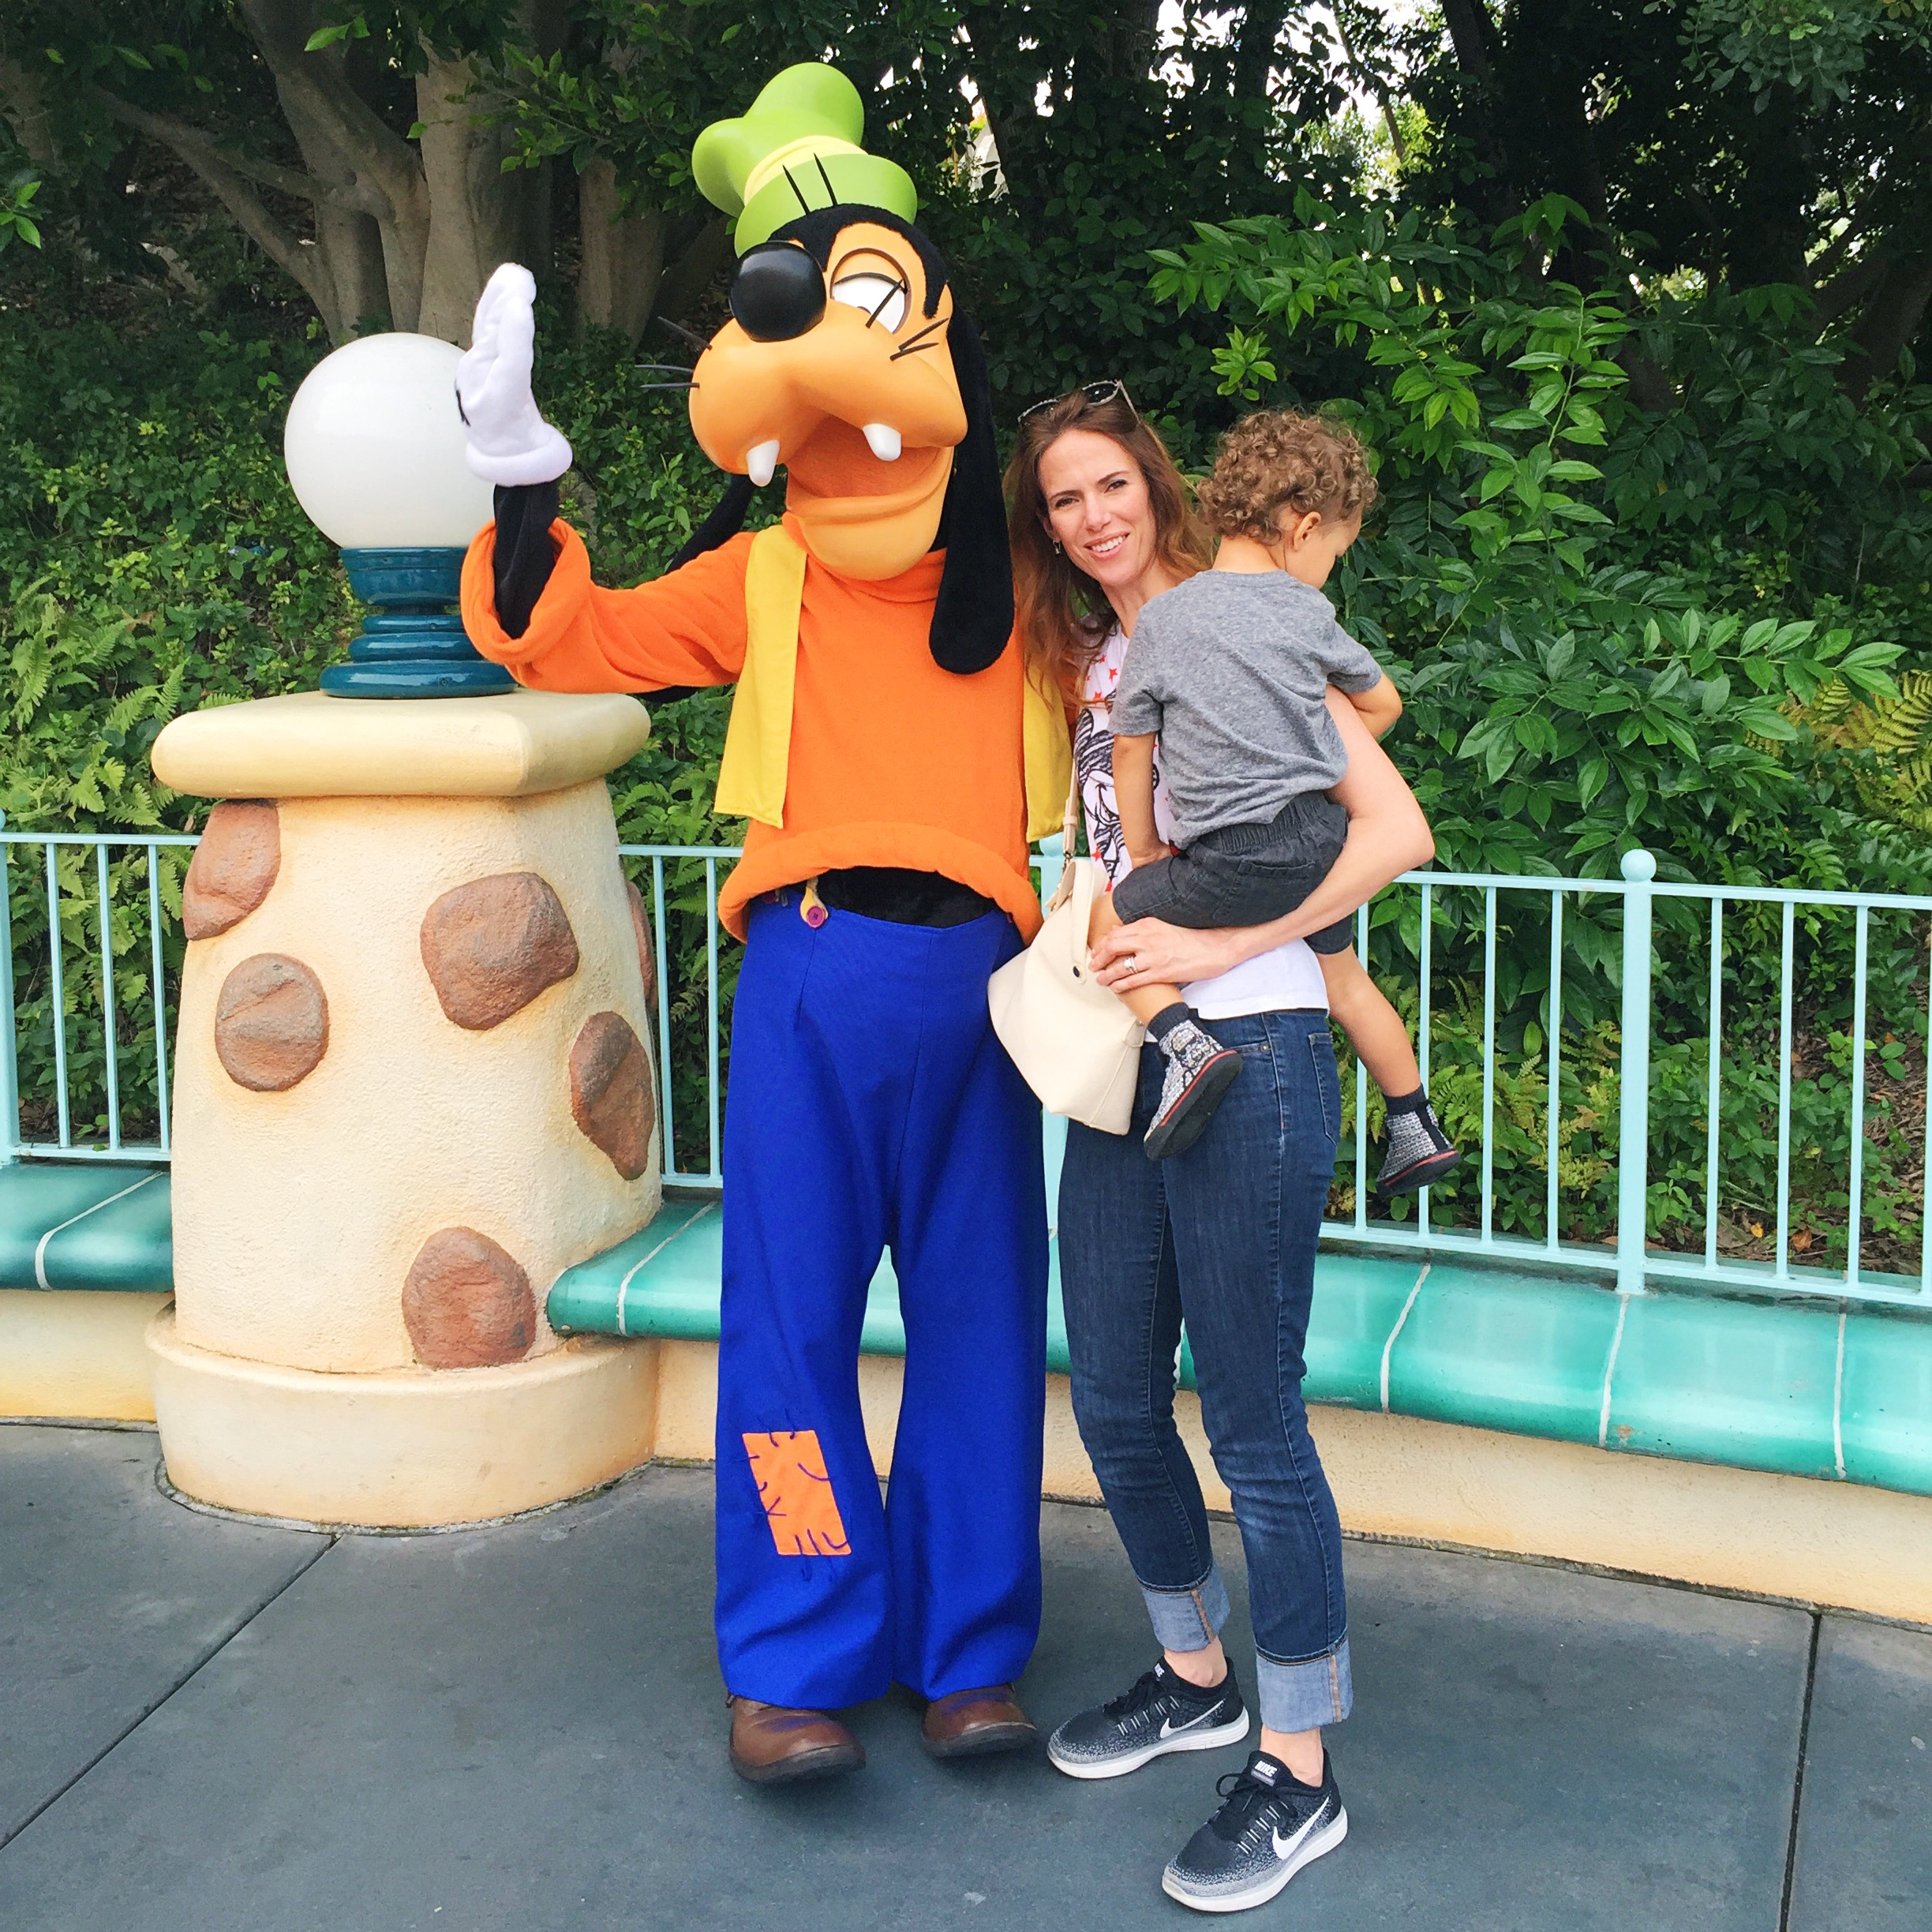 Goofy couldn't even get a hi-5 out of him.